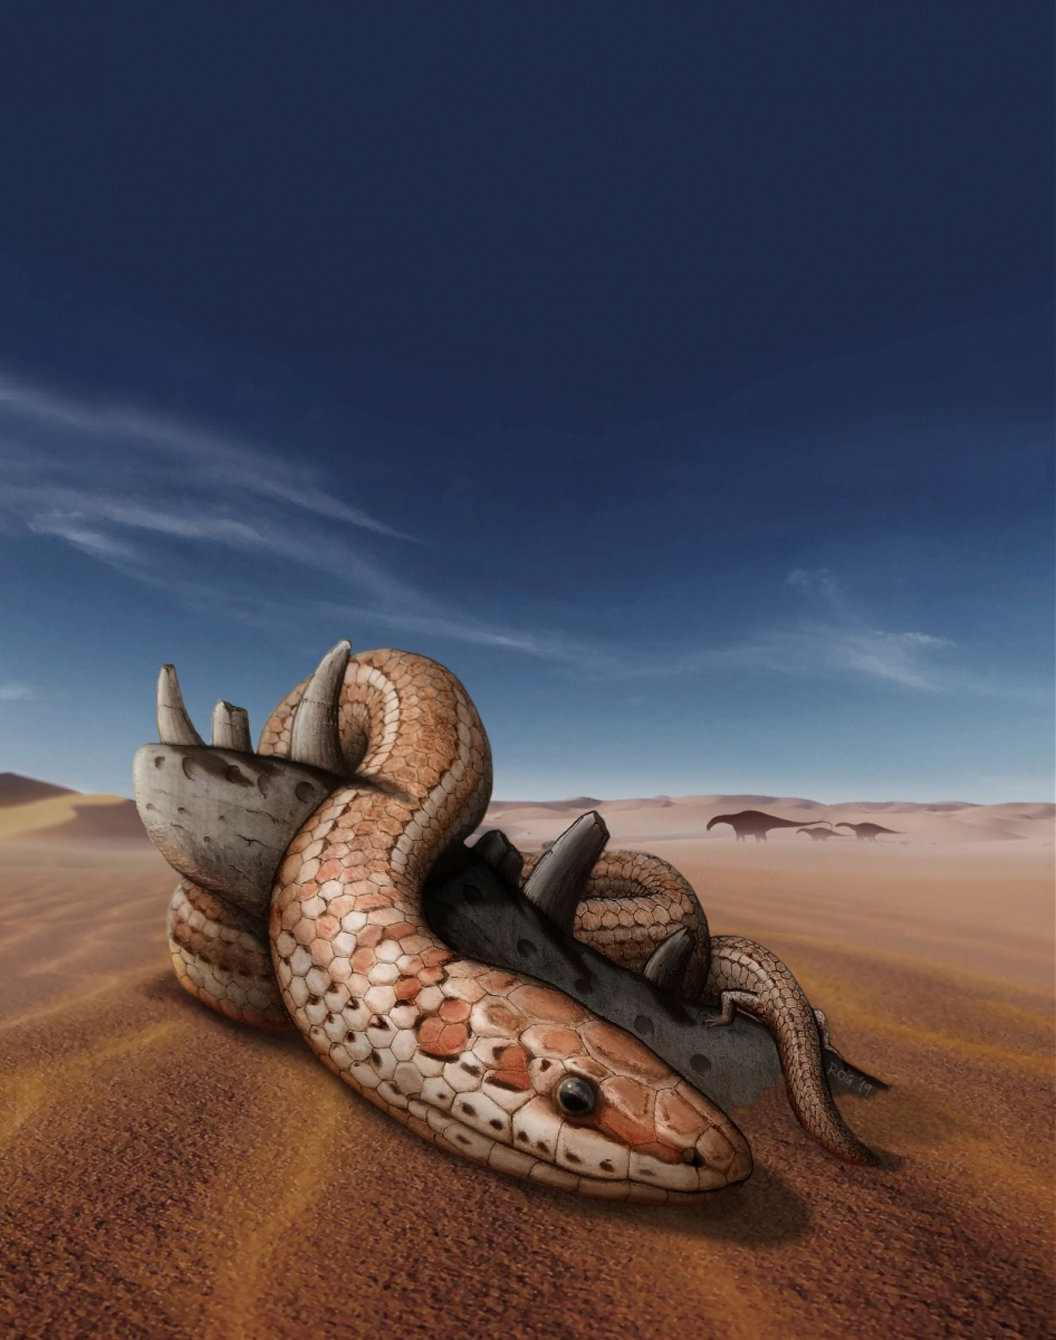 Prehistoric snakes had limbs for 70M years, new study shows